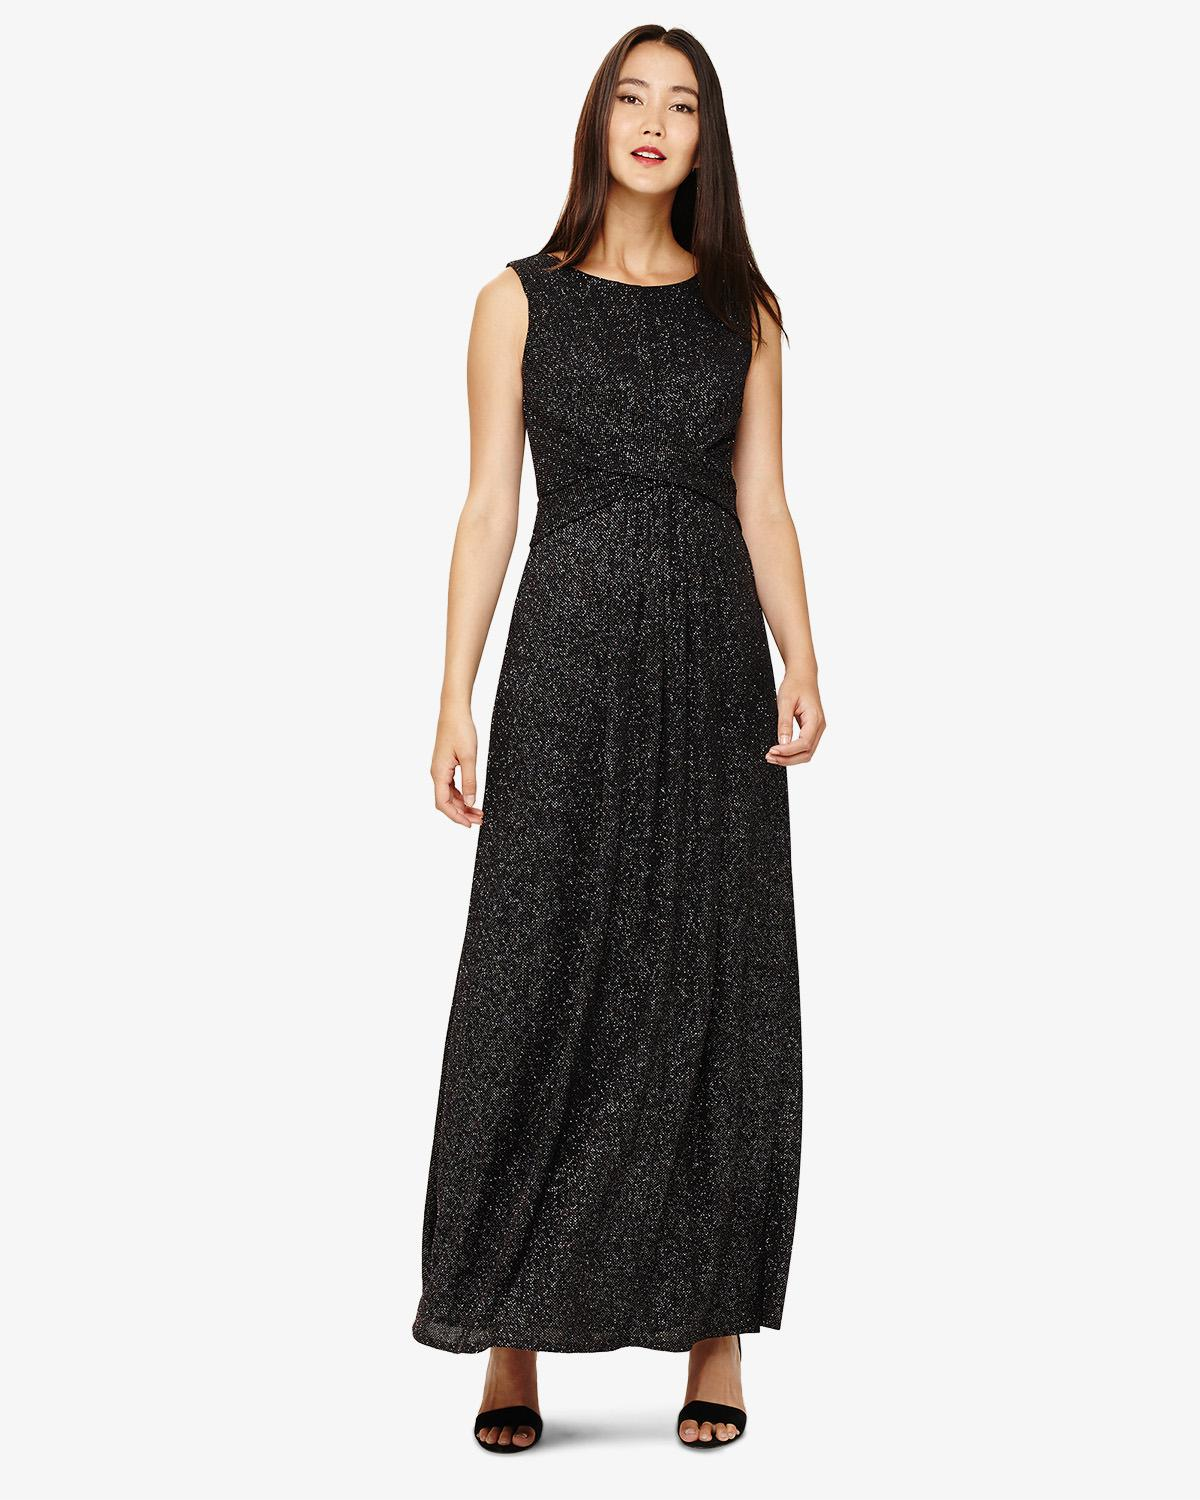 9644cce4c1 Lyst - Phase Eight Ida Shimmer Maxi Dress in Black